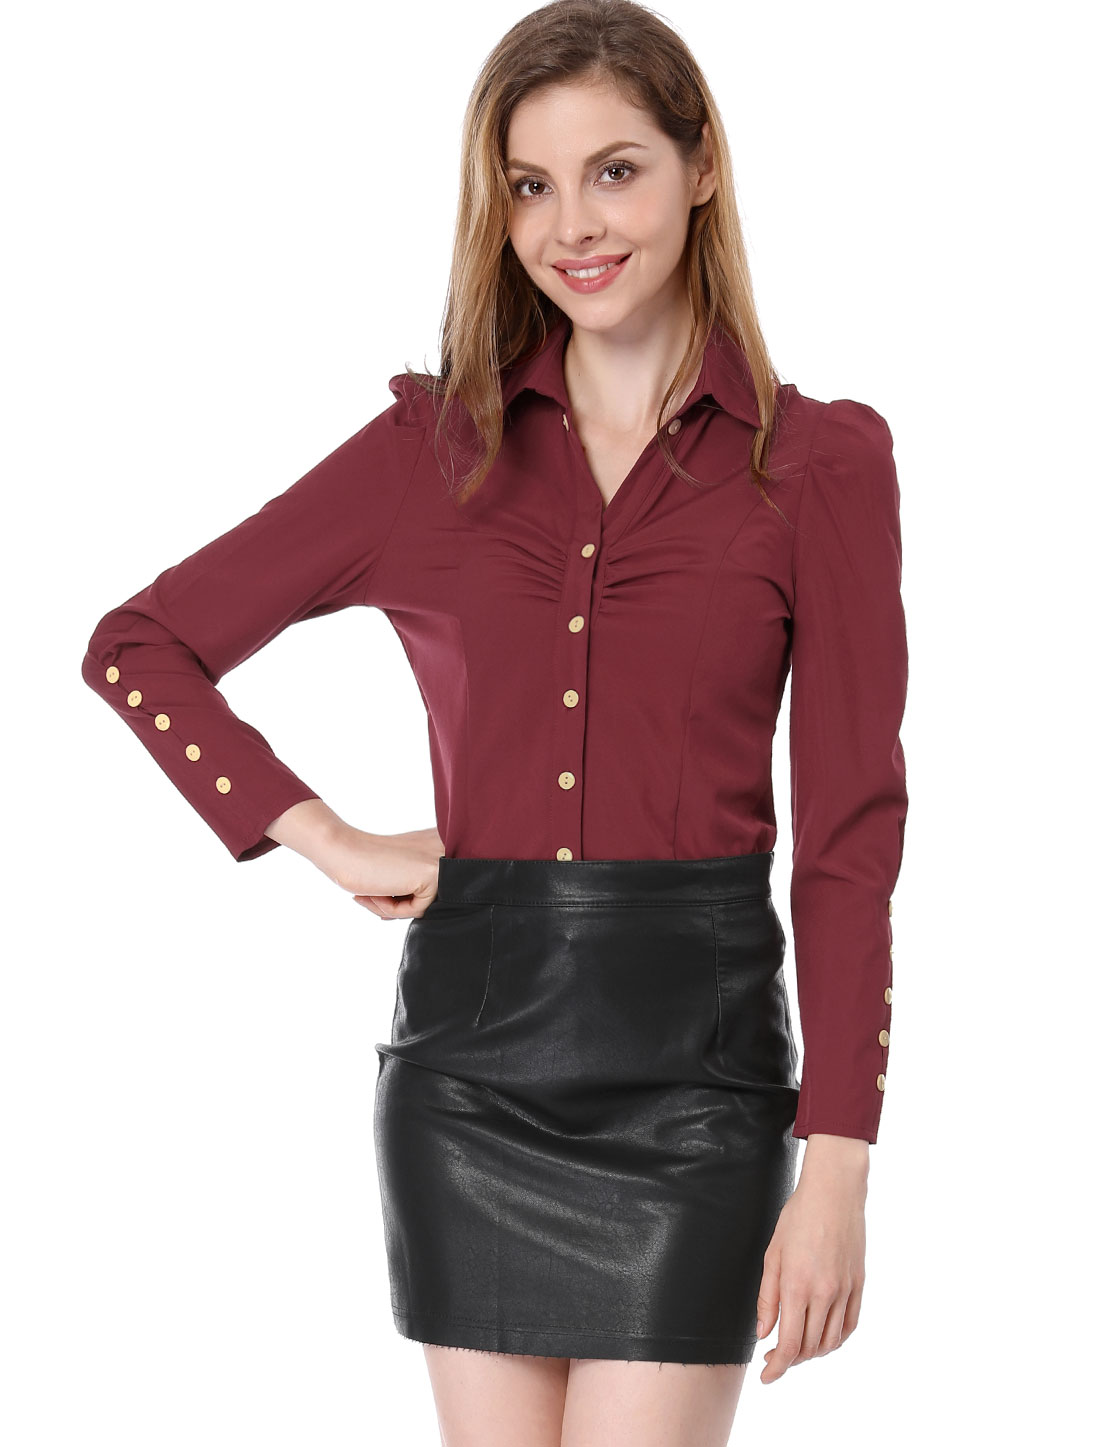 Women Button Up Ruched Detail Casual Shirt Burgundy S